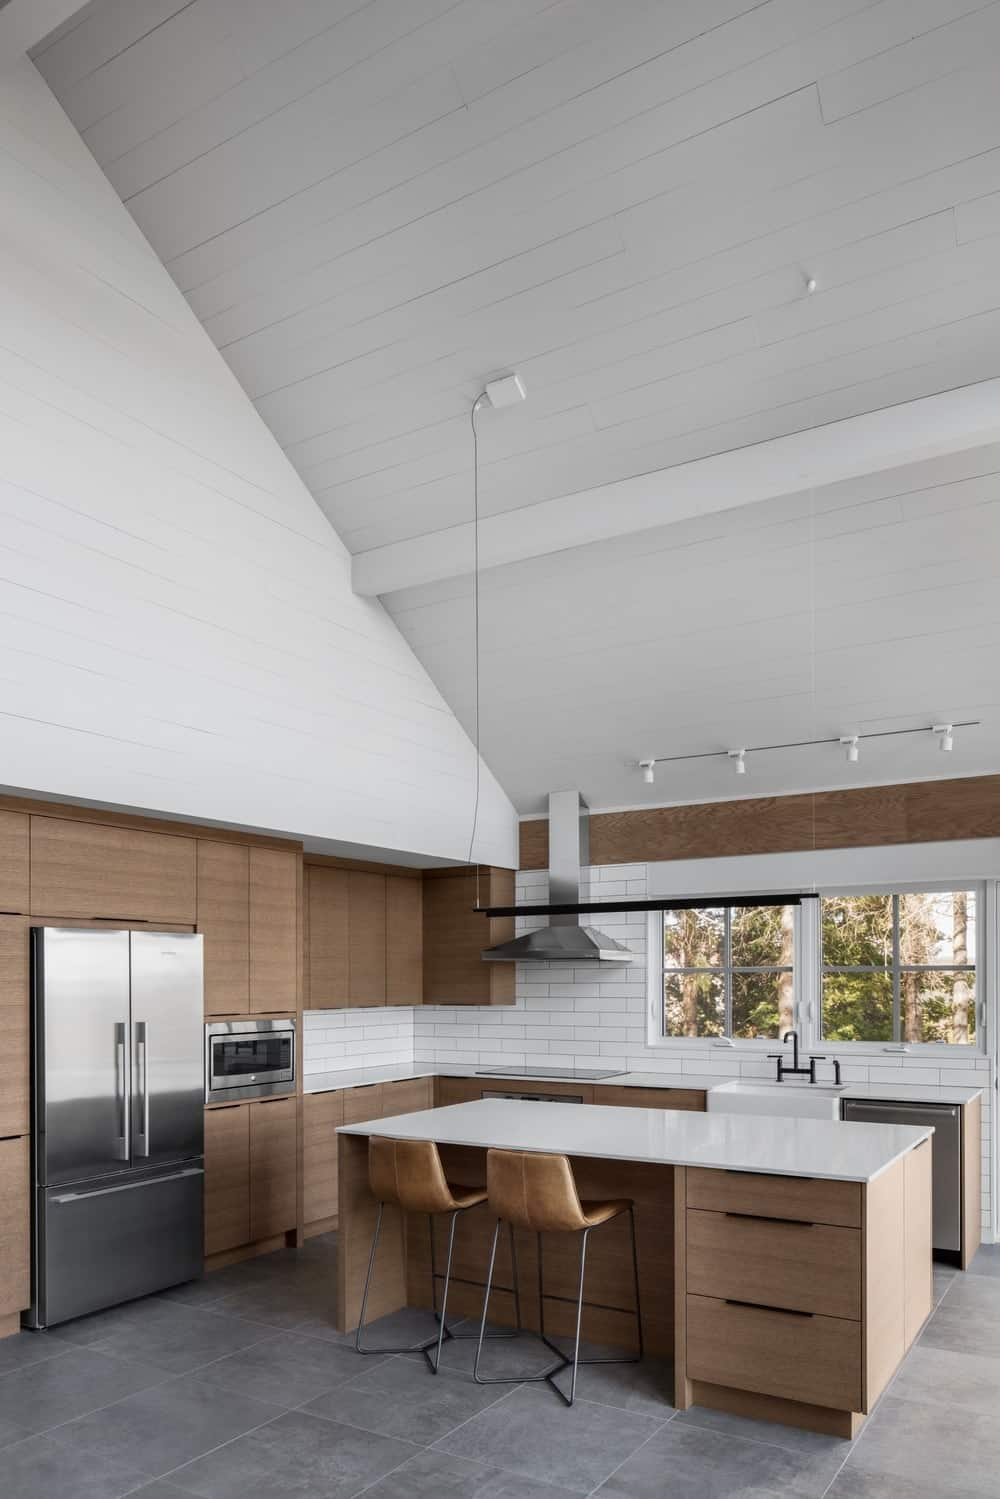 The simplicity of this design baffles us. Its pristine white countertops paired with plain organic wood are the ultimate choice for a kitchen that overlooks tall green trees. Also, painting the high-end roof completely white gives the place a more open look and focuses one's attention on the kitchen.